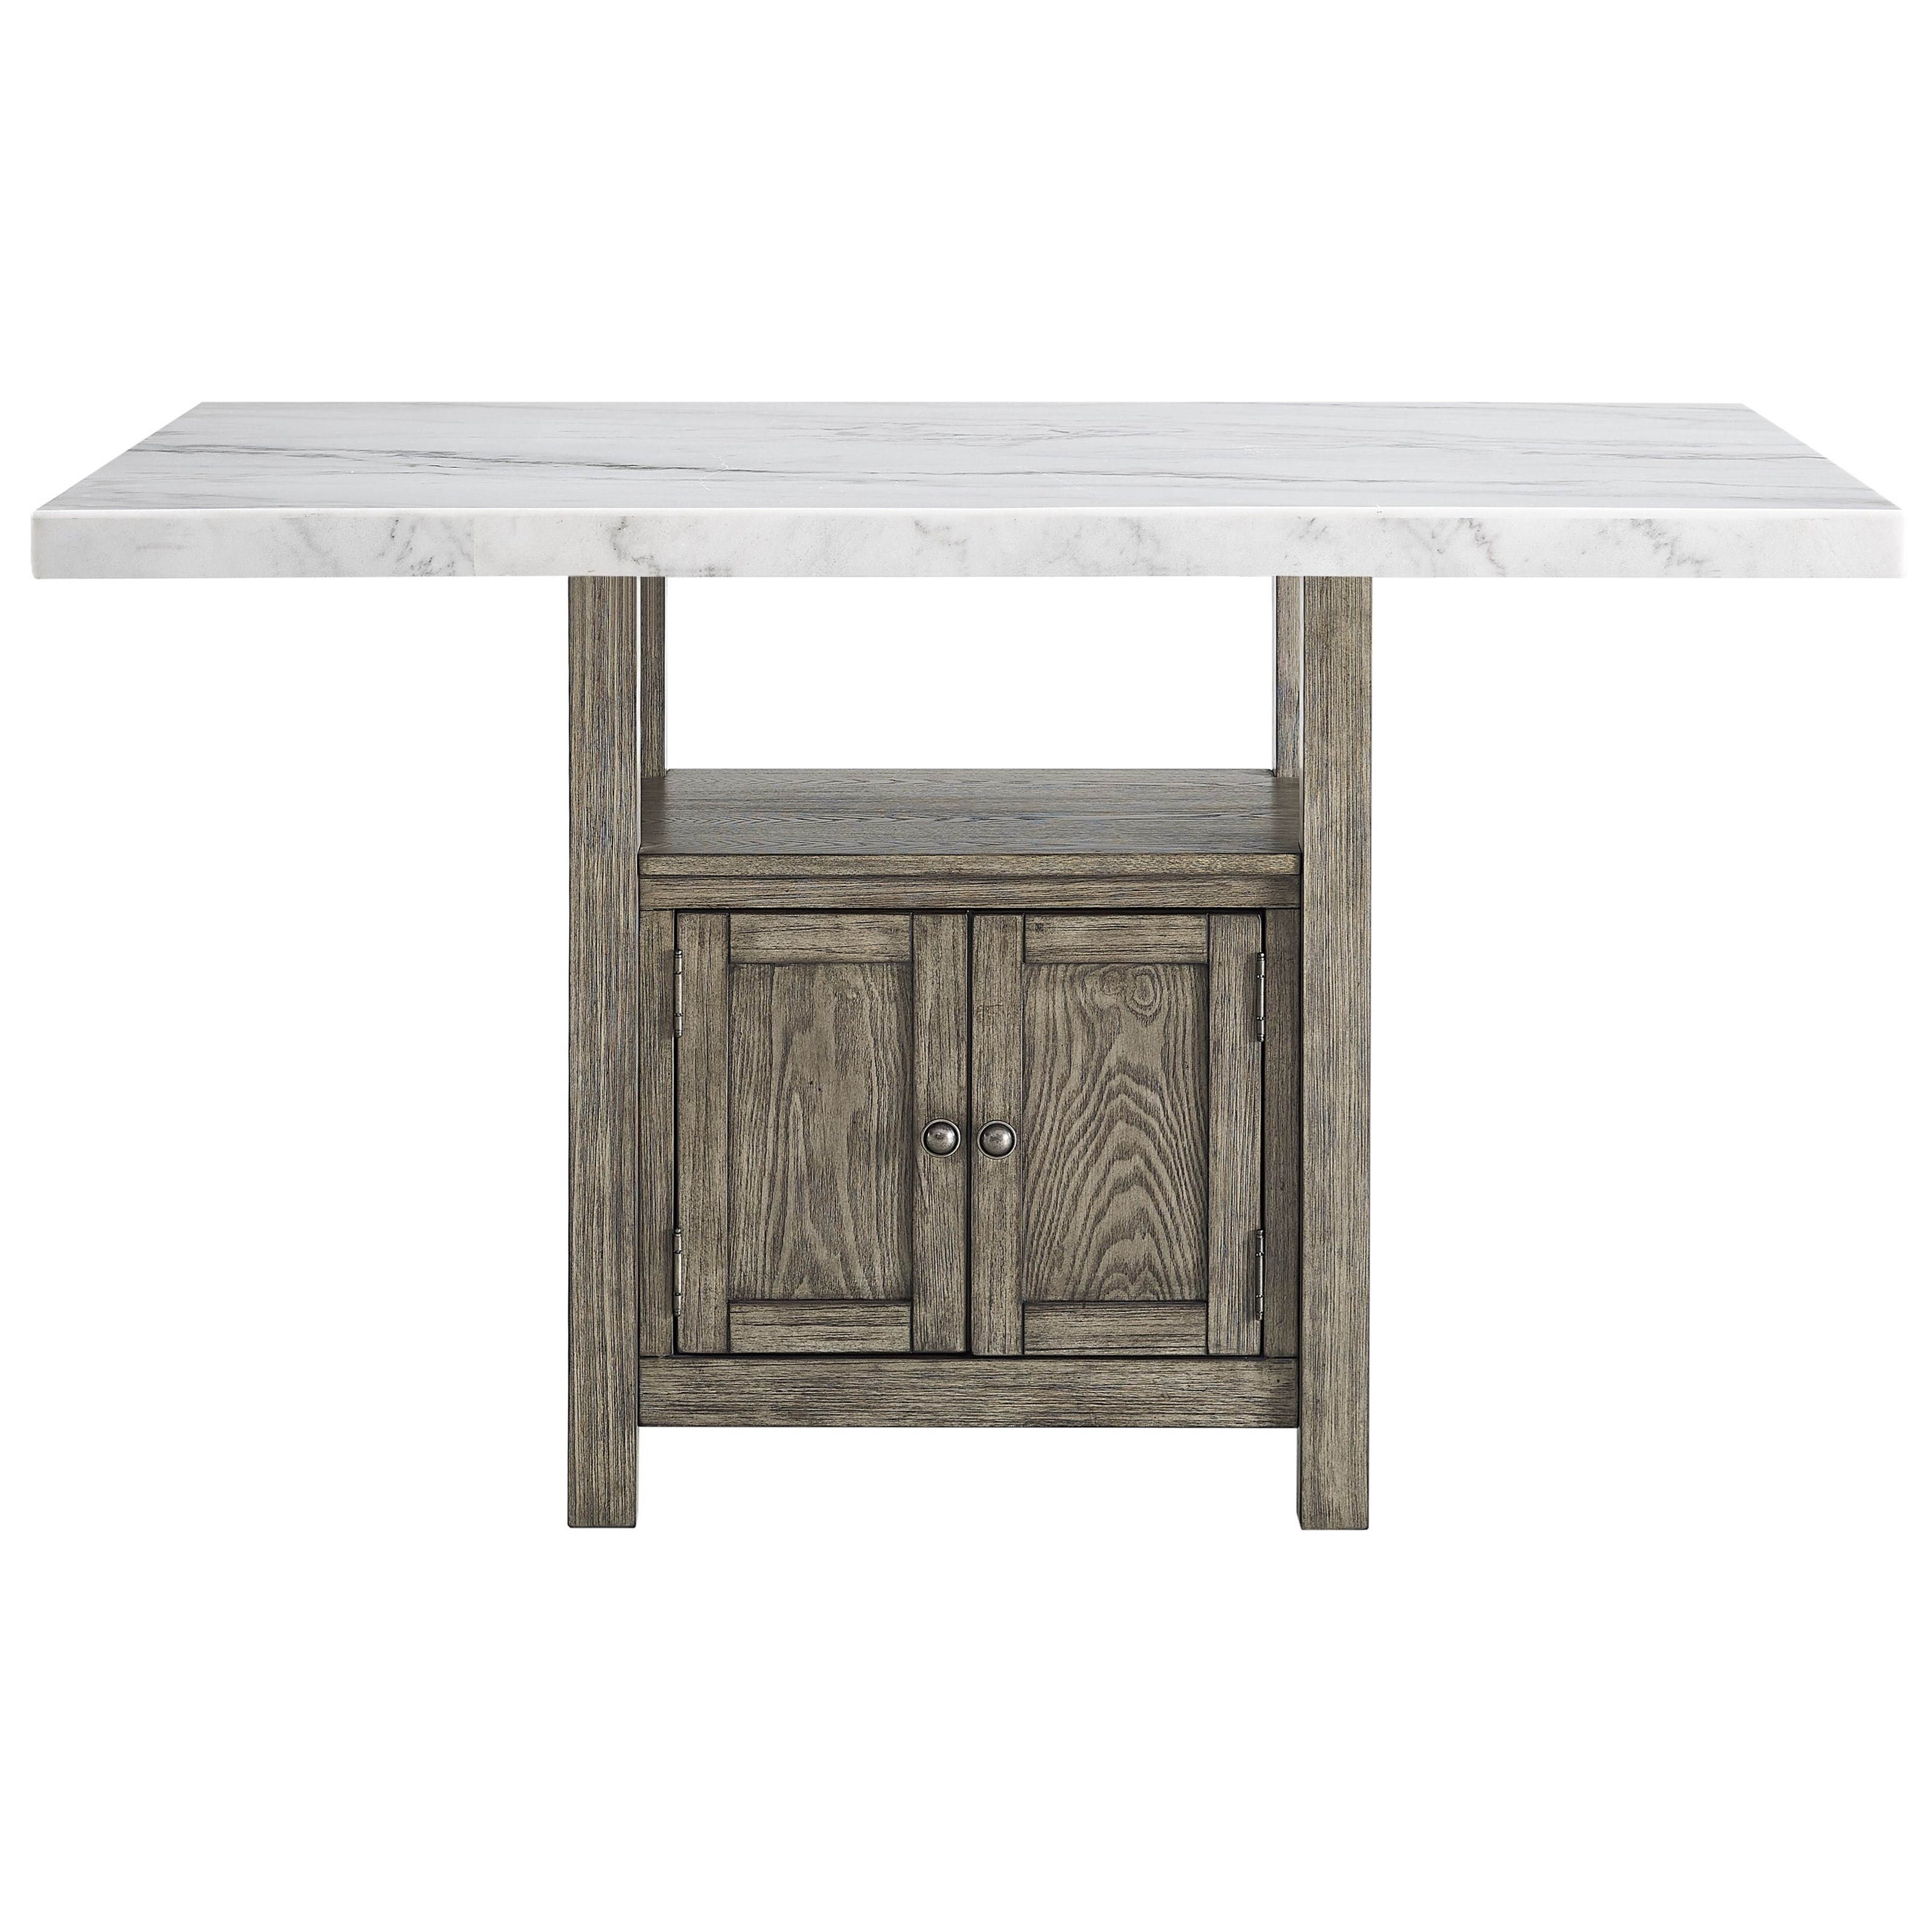 Grayson Counter Height Table by Steve Silver at Darvin Furniture